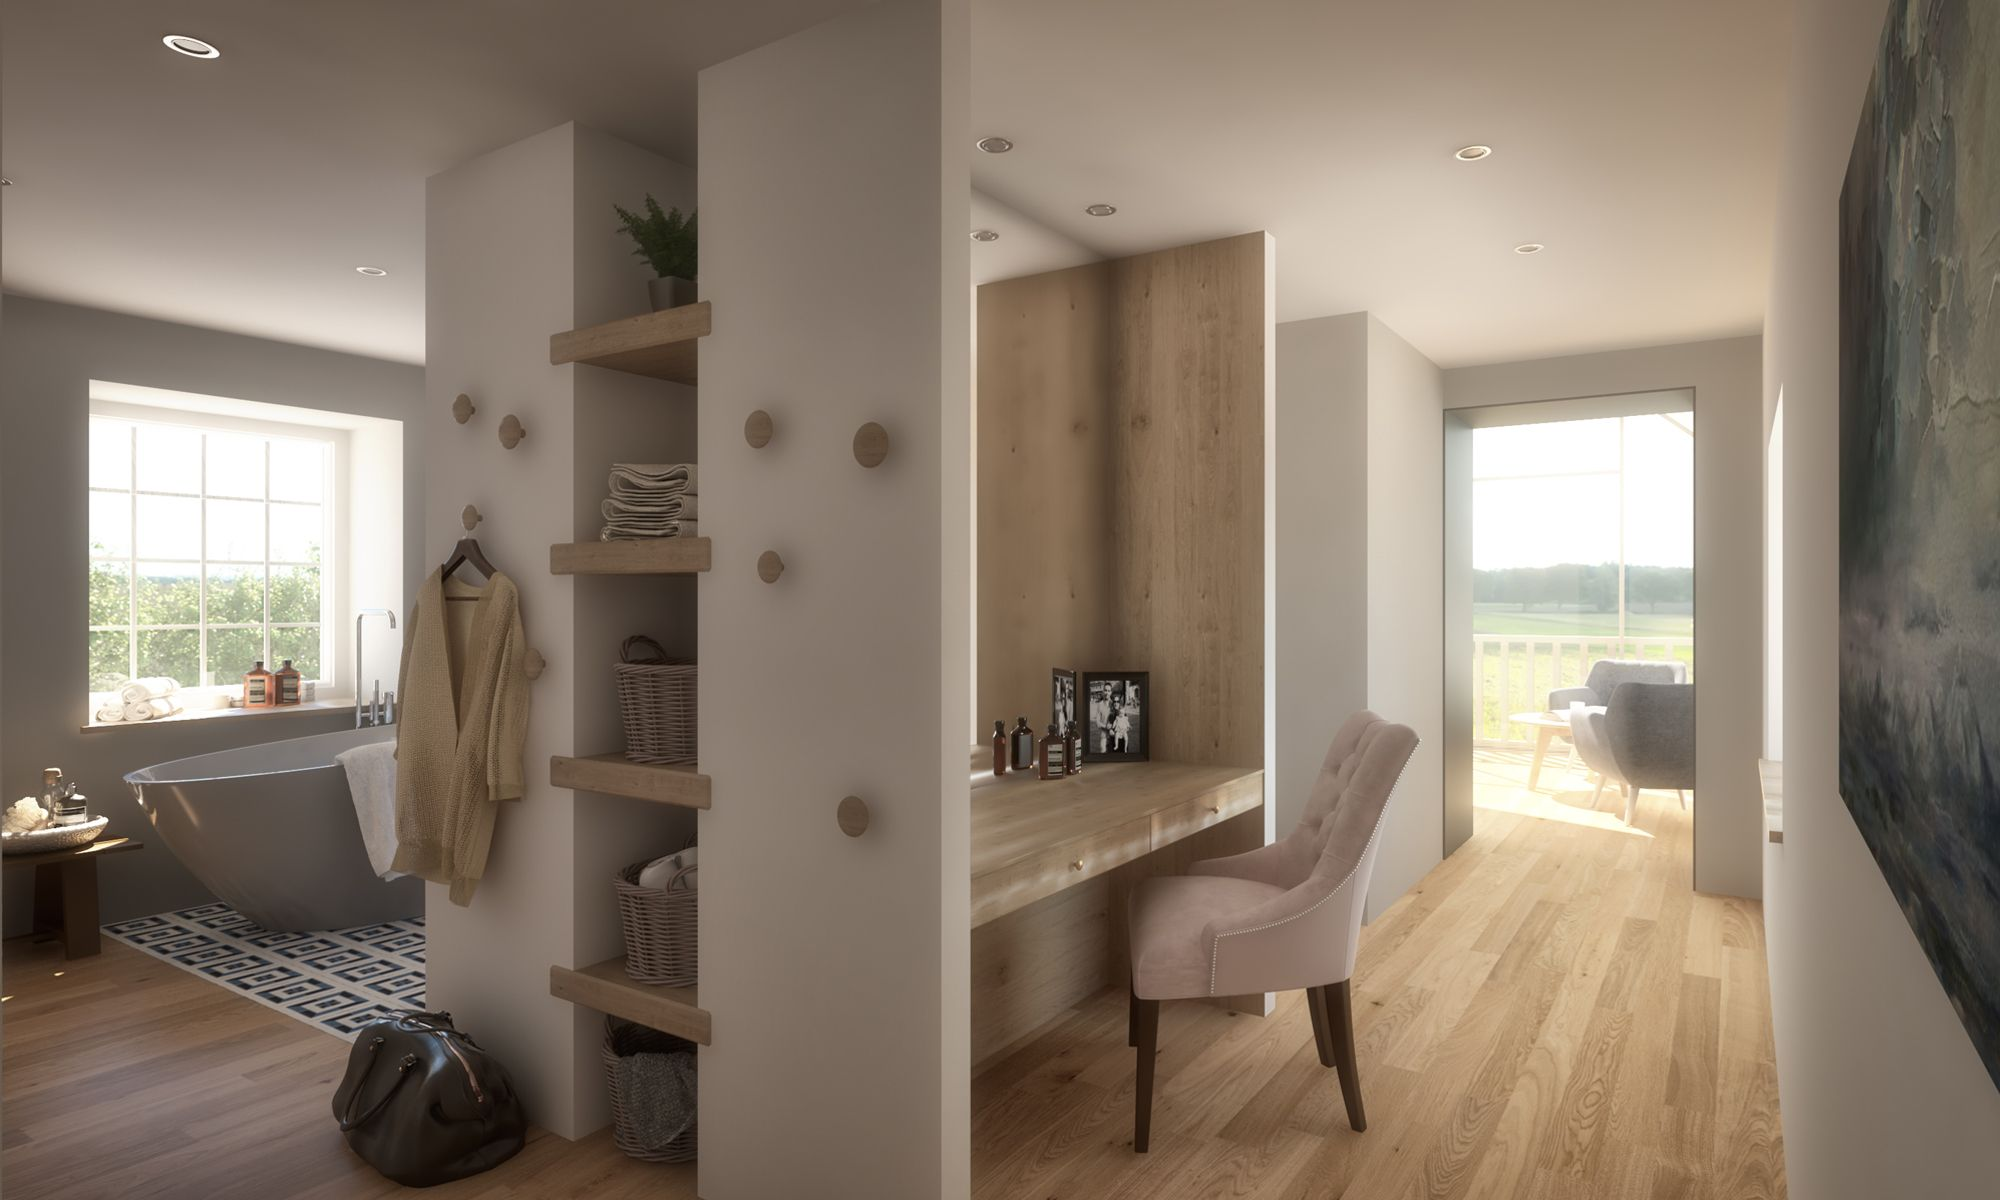 interior design for an open plan master bedroom and ensuite bathroom